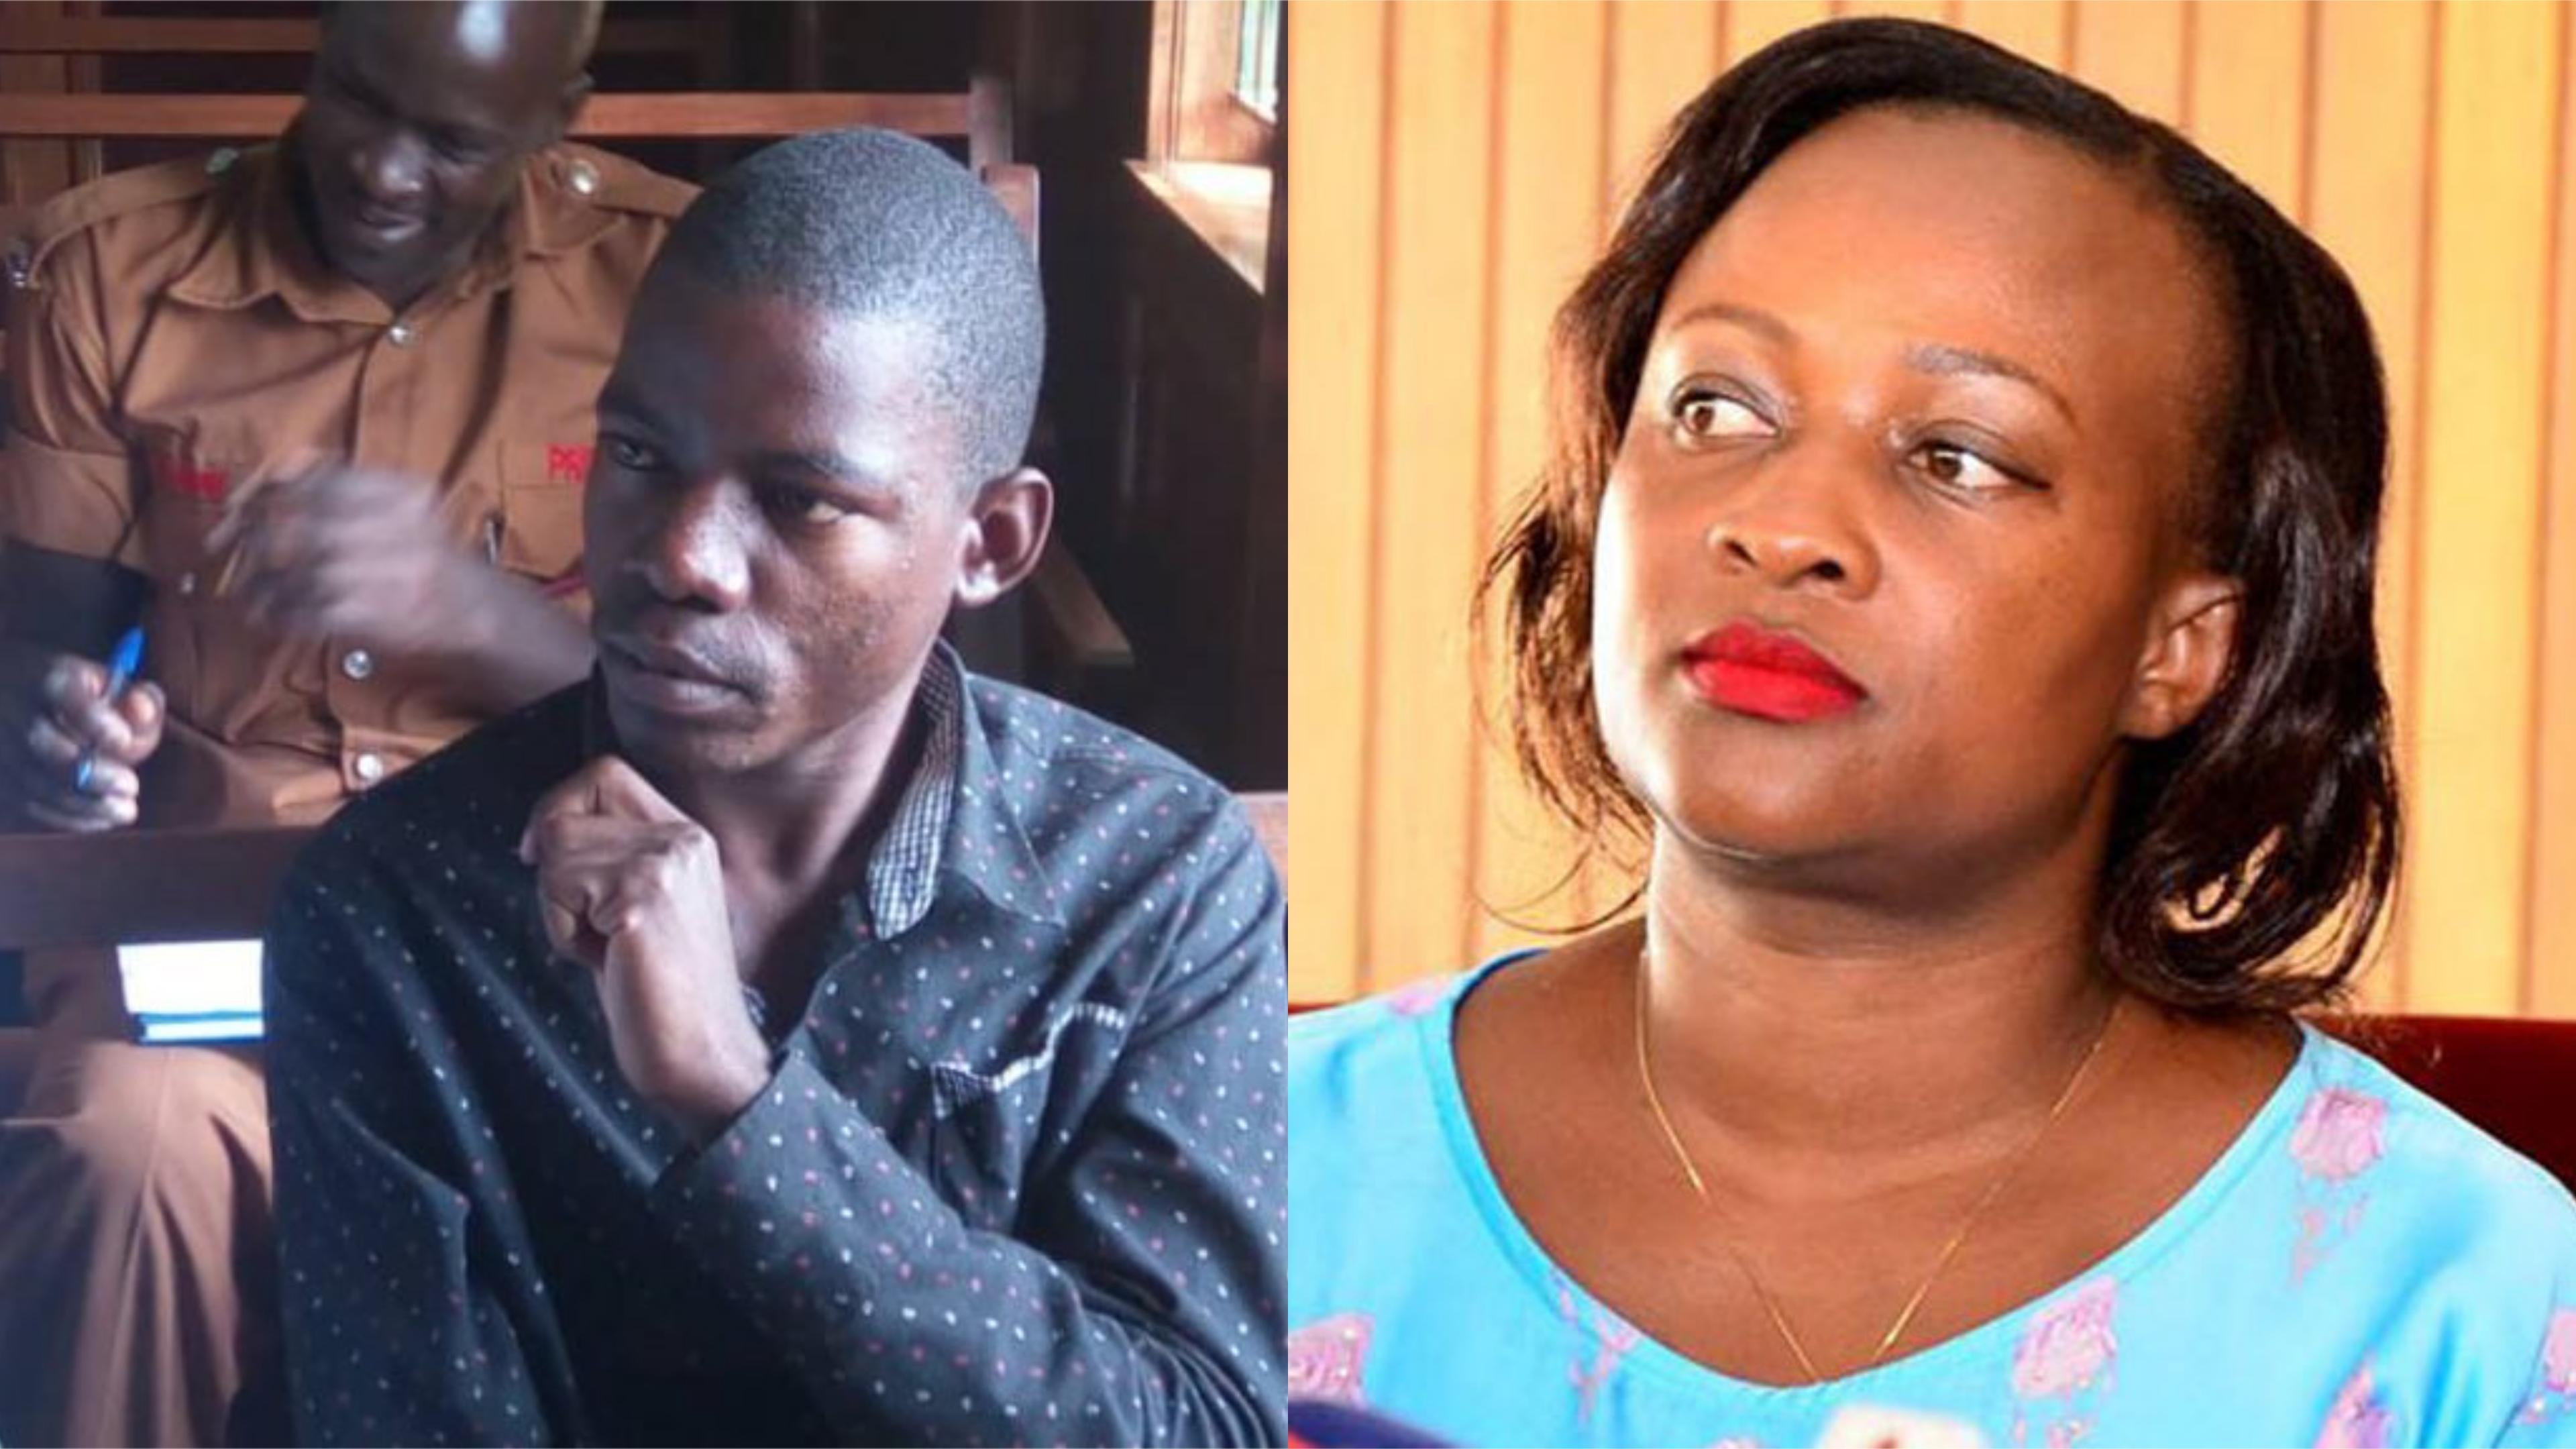 The case involving Kabarole MP, Sylvia Rwaboogo (R) and a YMCA student Brian Isiko has been forwarded to the Hgh Court for interpretation (FILE PHOTO)